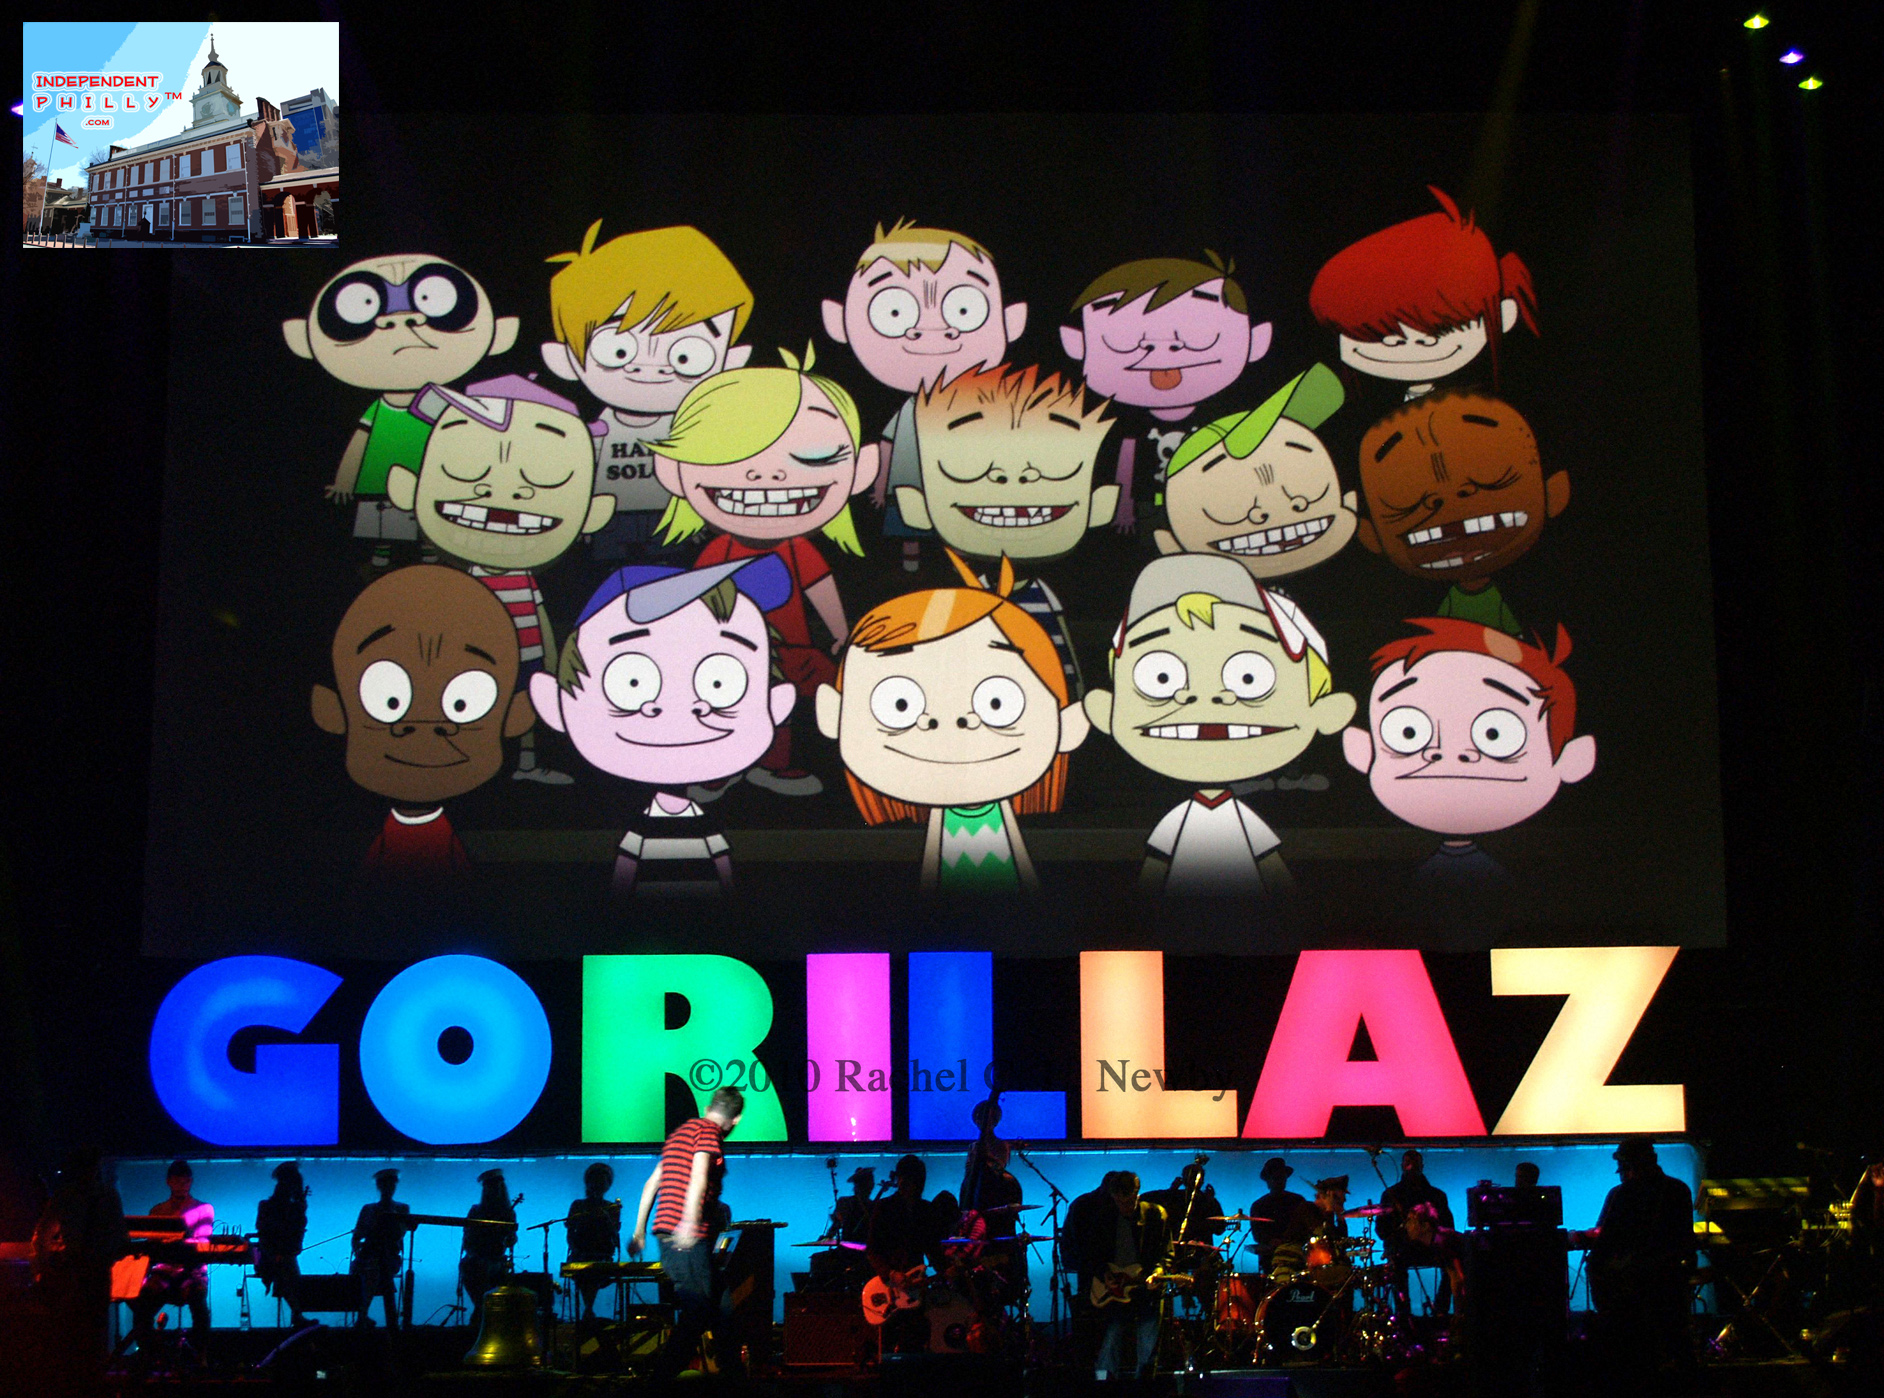 The Gorillaz Musical Evolution